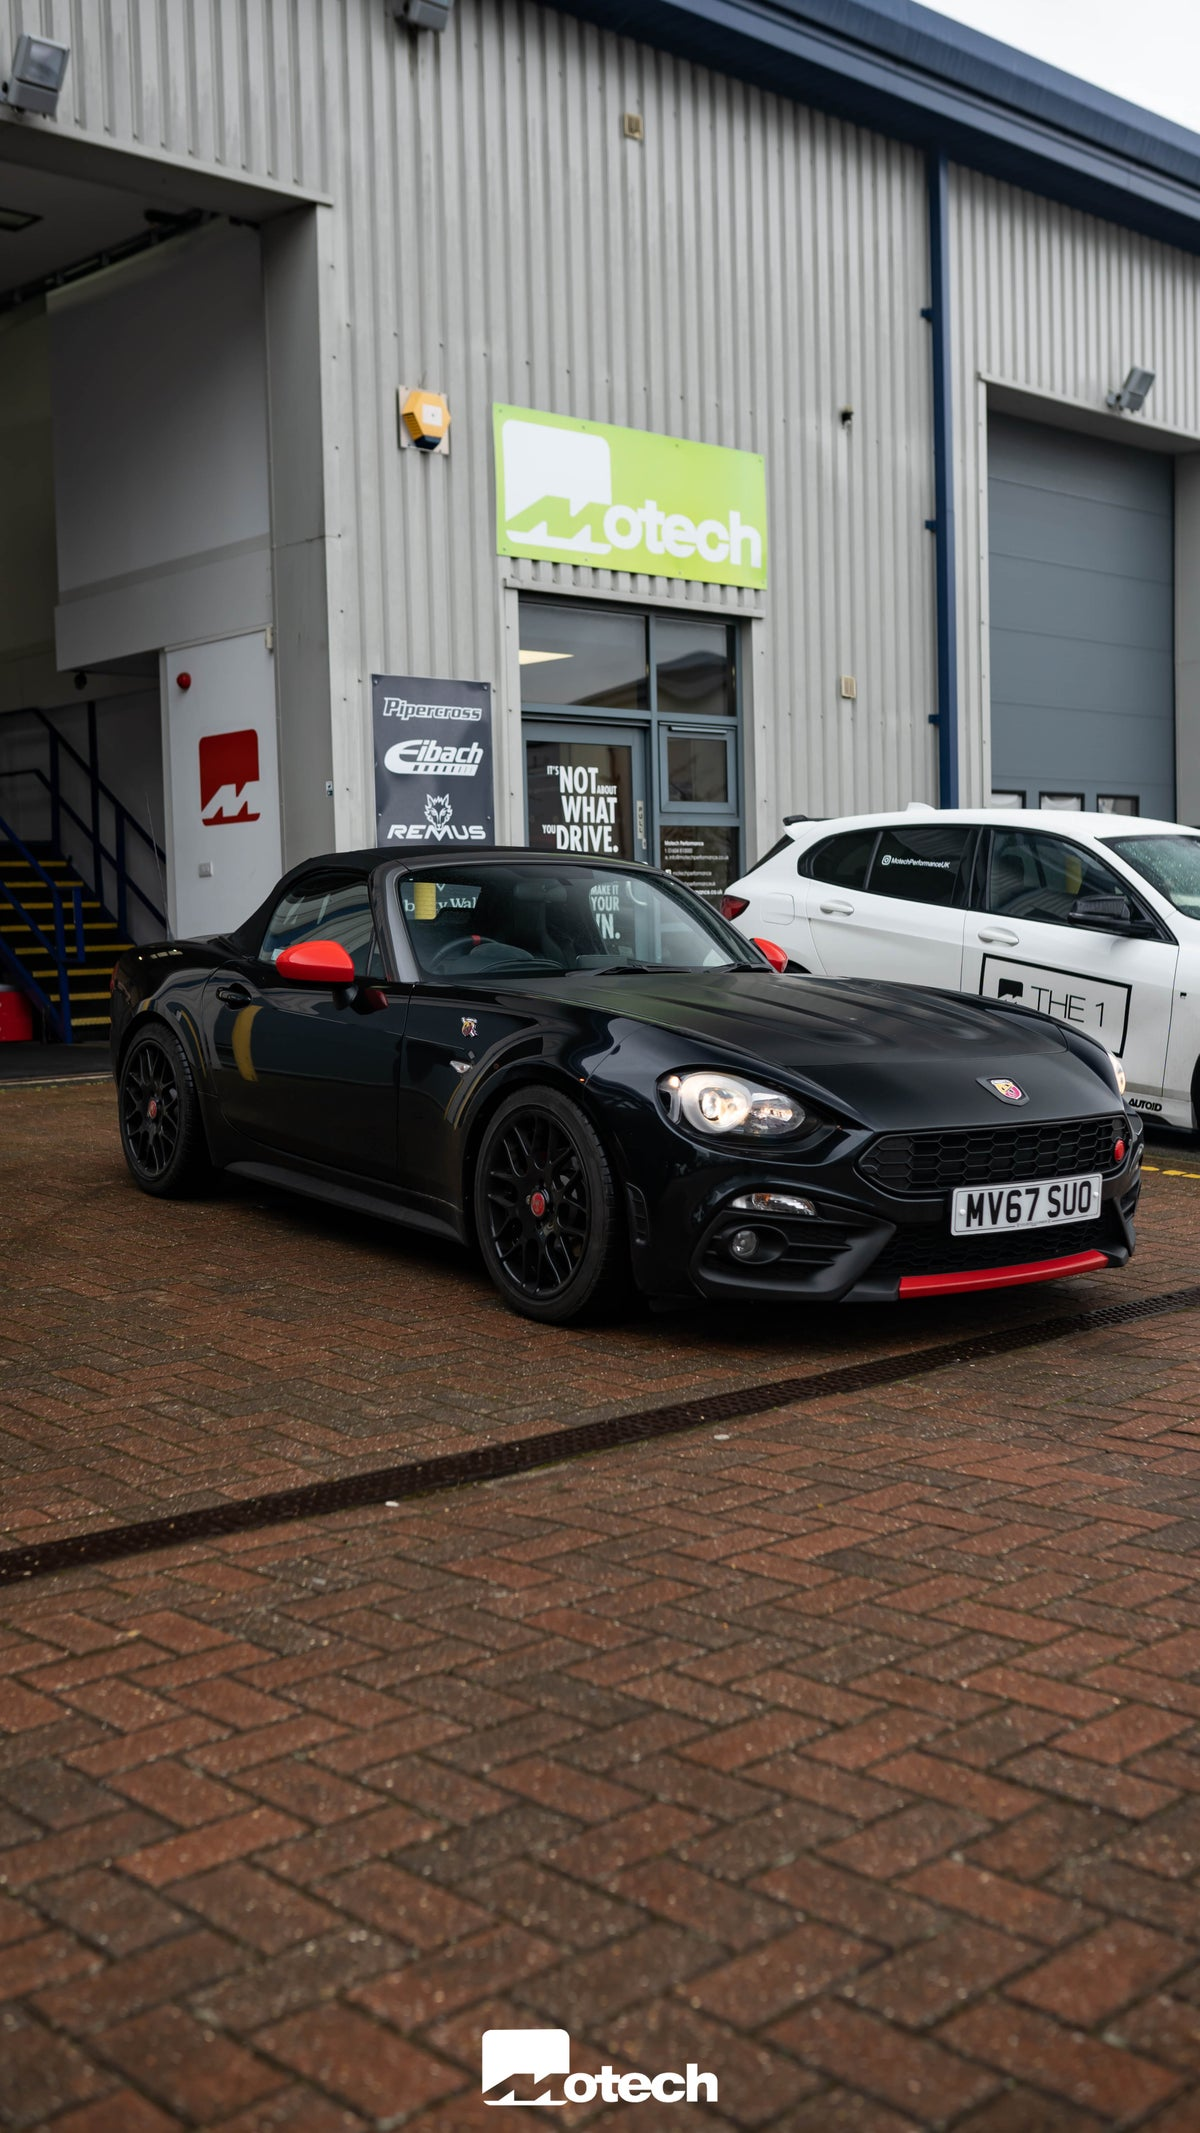 Image of Fiat Abarth 124 Spider Eibach Lowering Springs